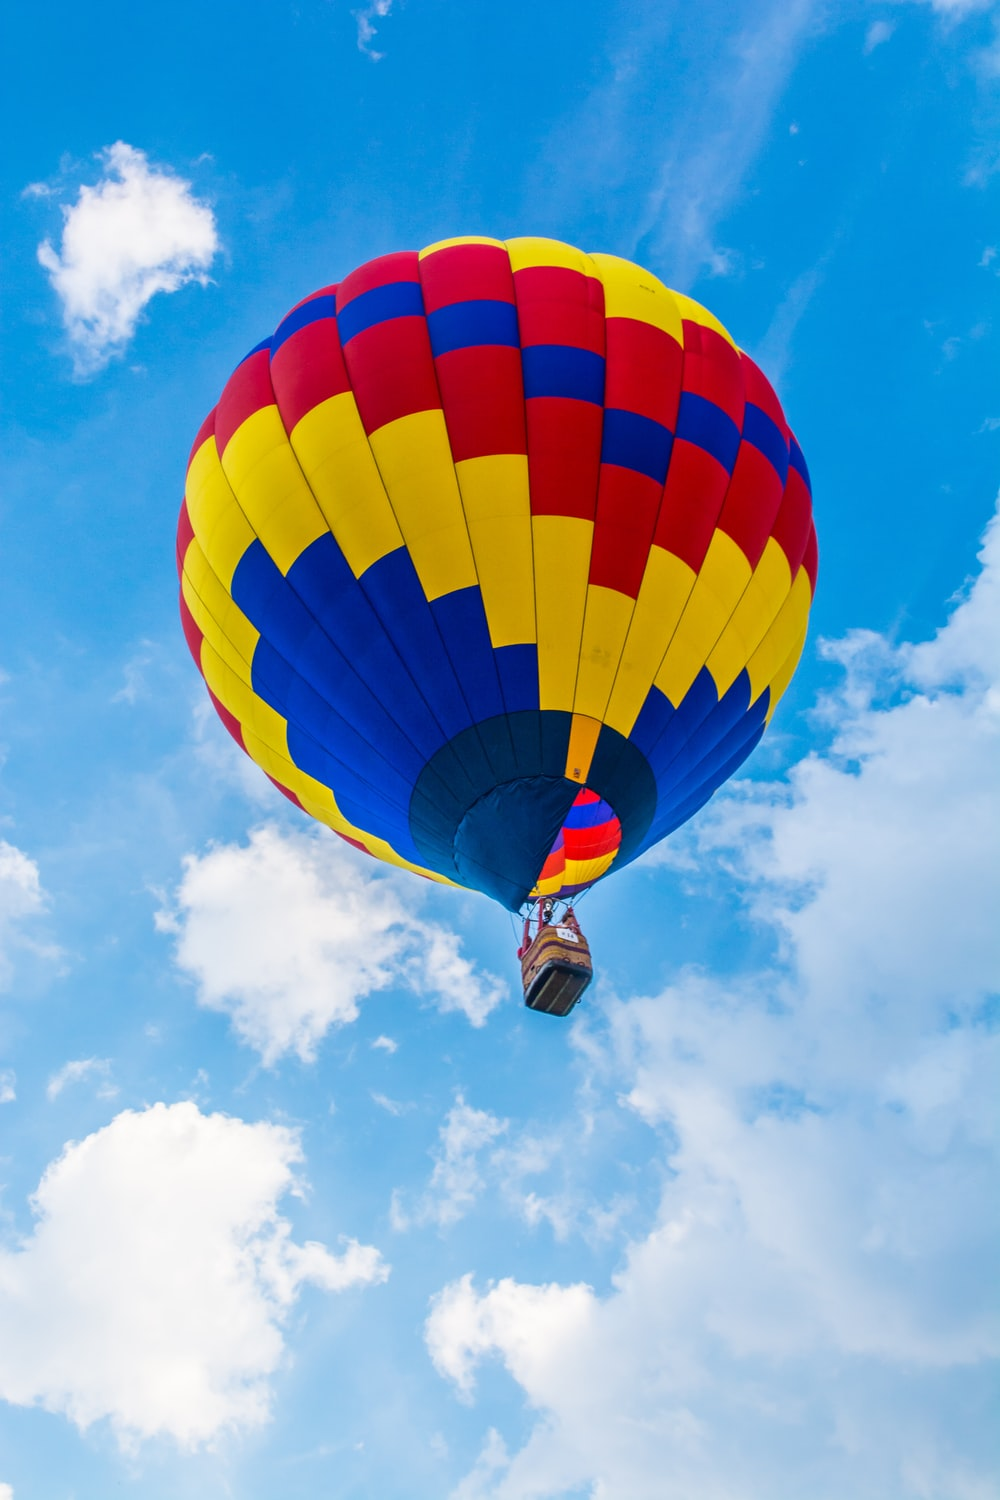 yellow, red, and blue hot air balloon flying during daytime